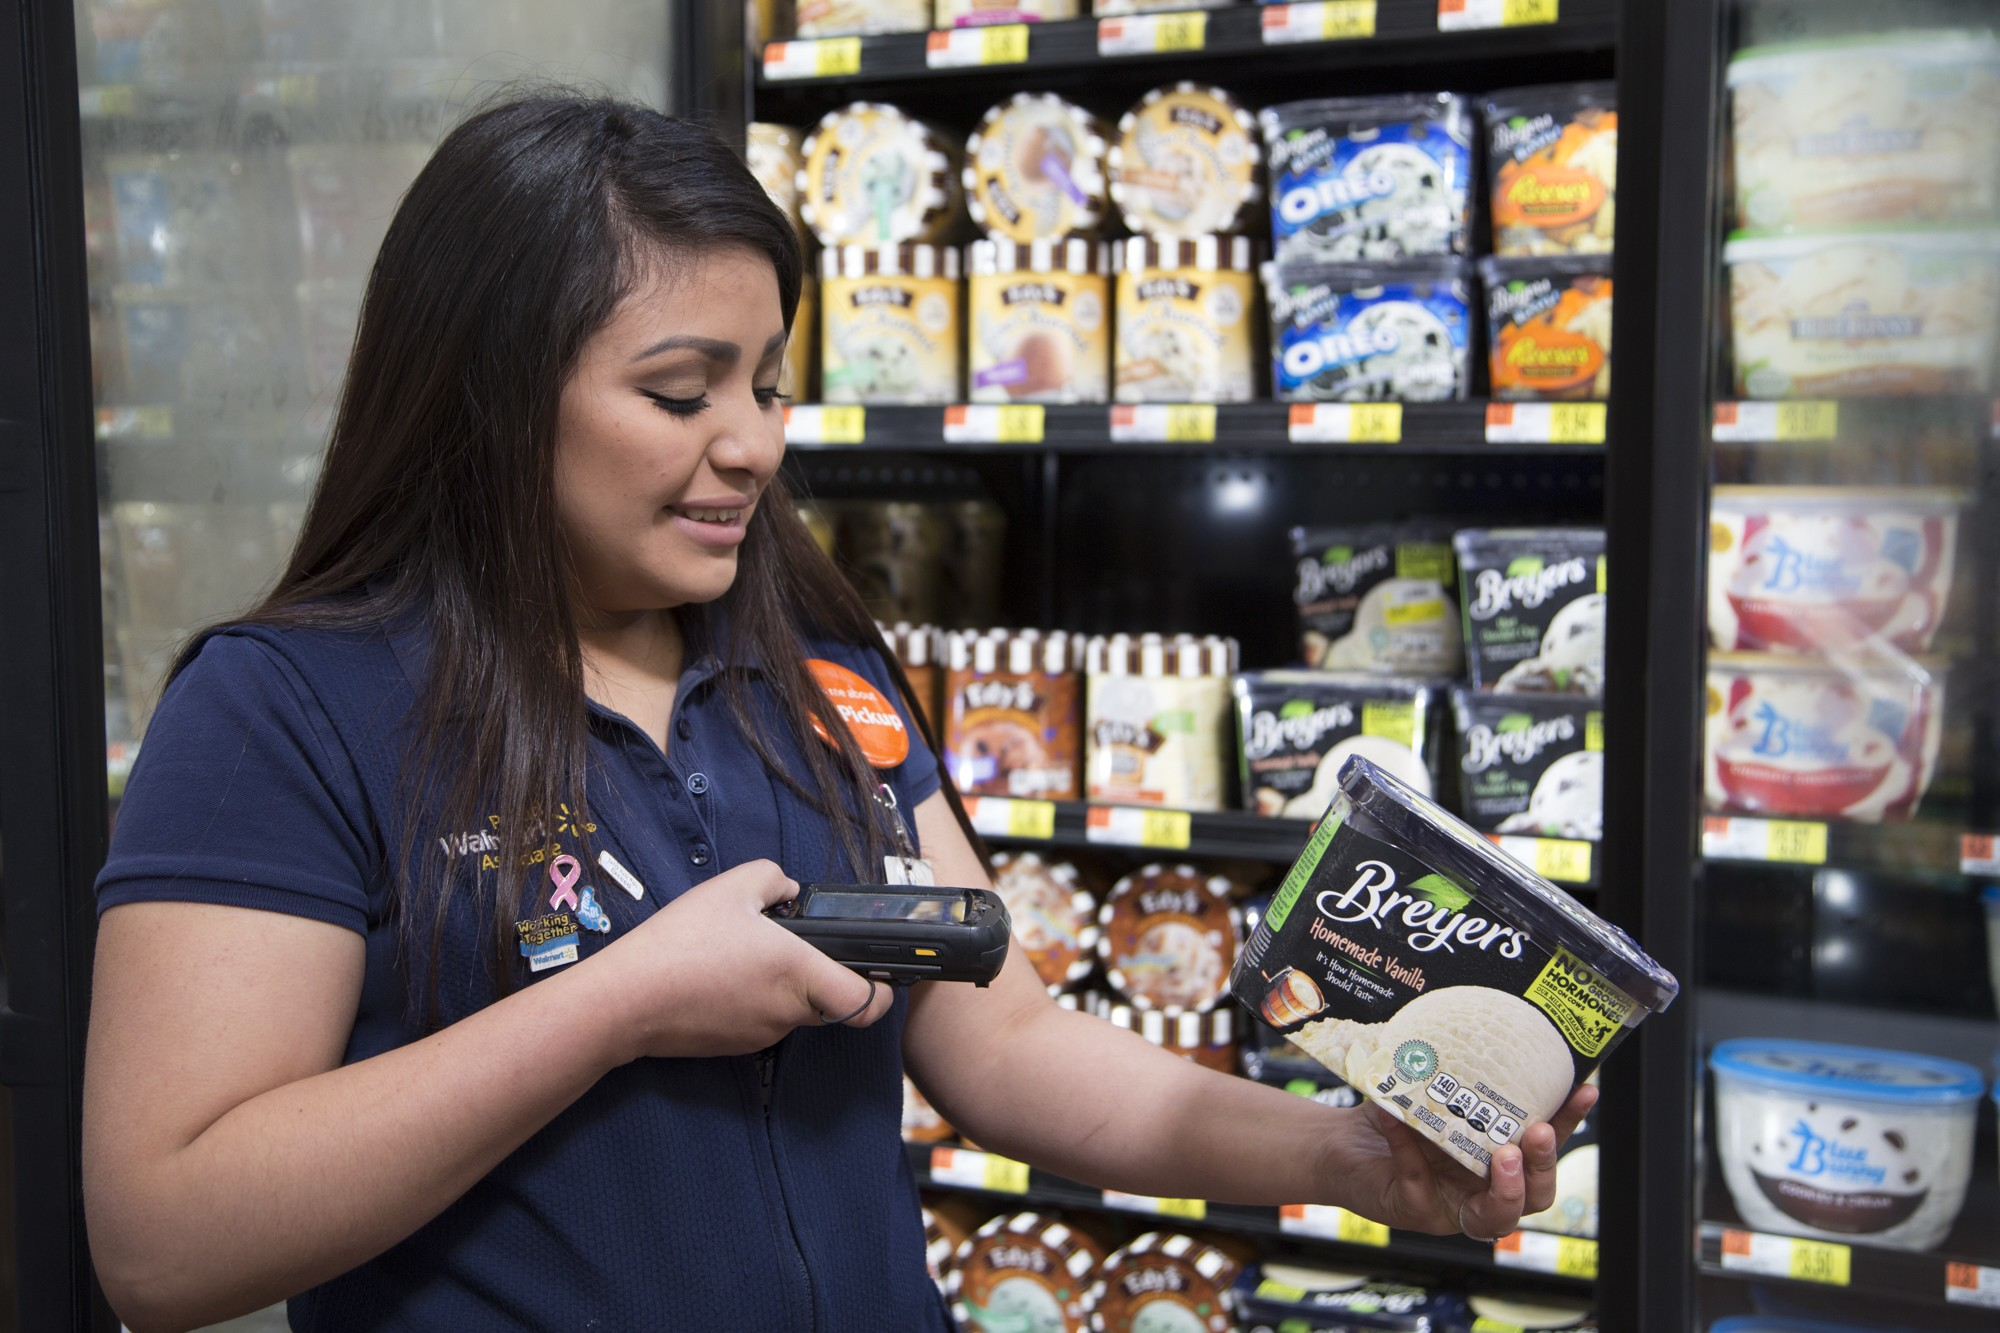 A female associate scans ice cream for grocery pickup